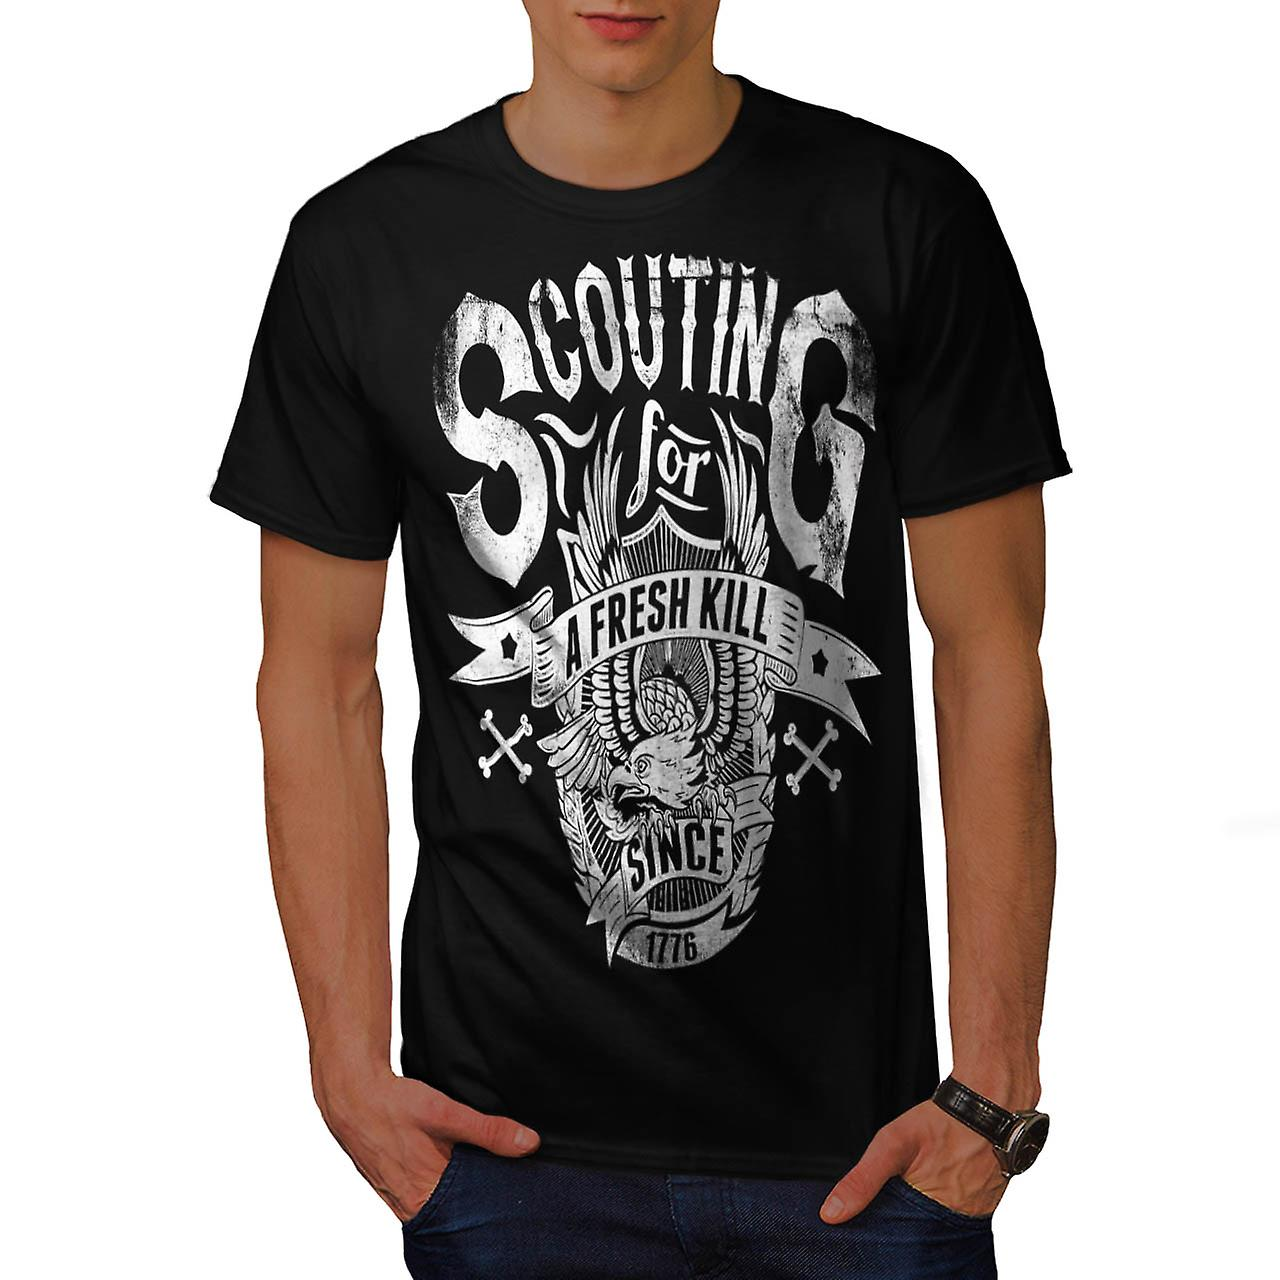 Mangiare fresco Kill Eagle Scout Club uomini t-shirt nero | Wellcoda